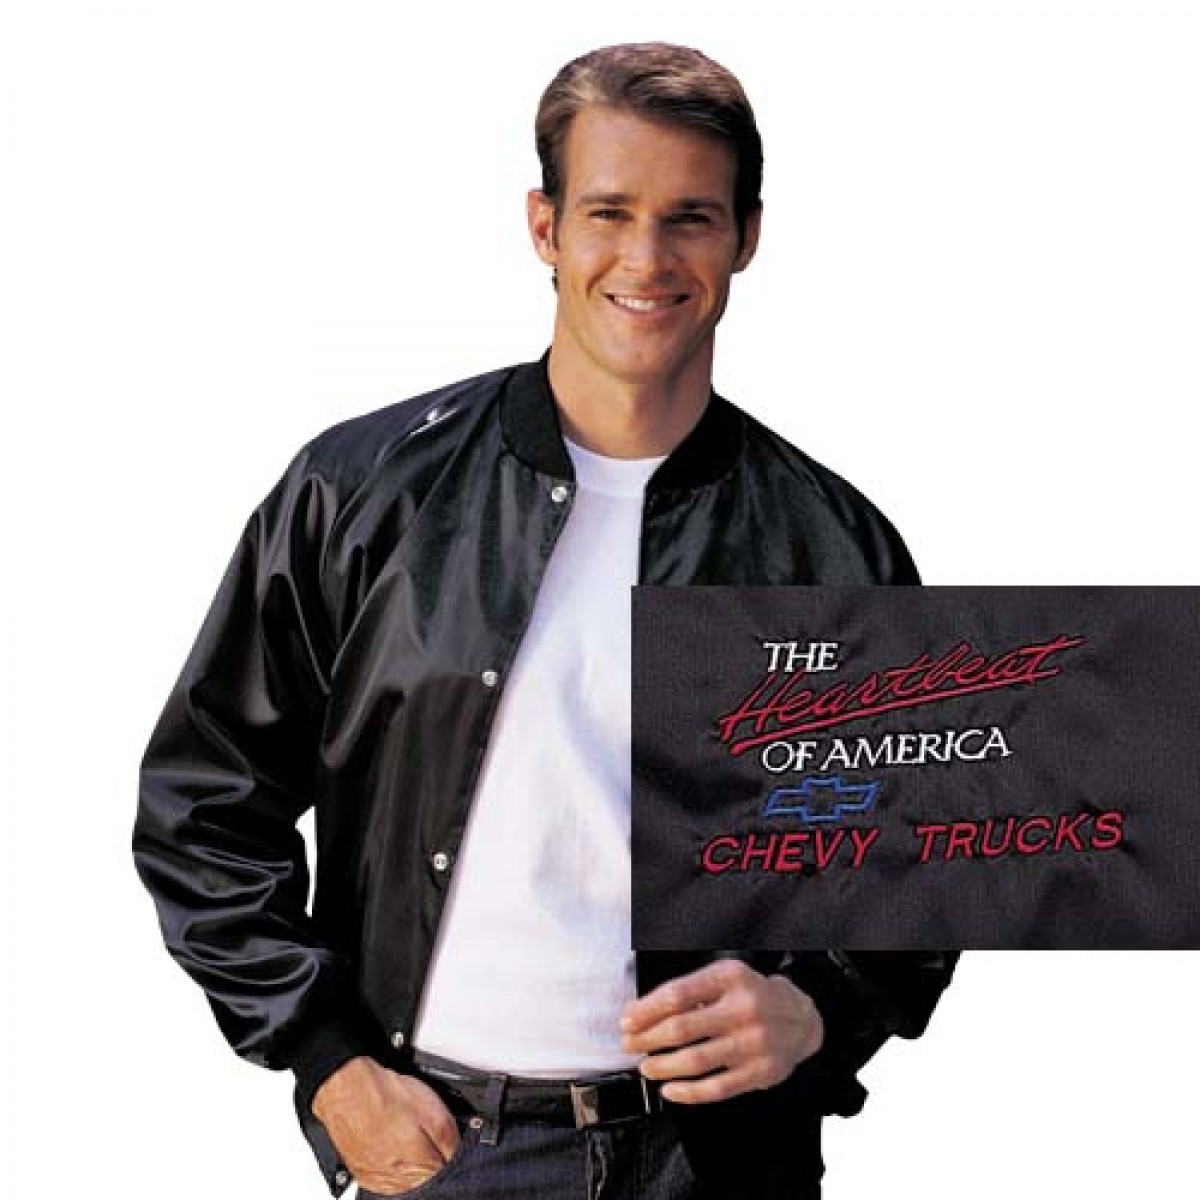 Heartbeat of america with chevy trucks satin jacket